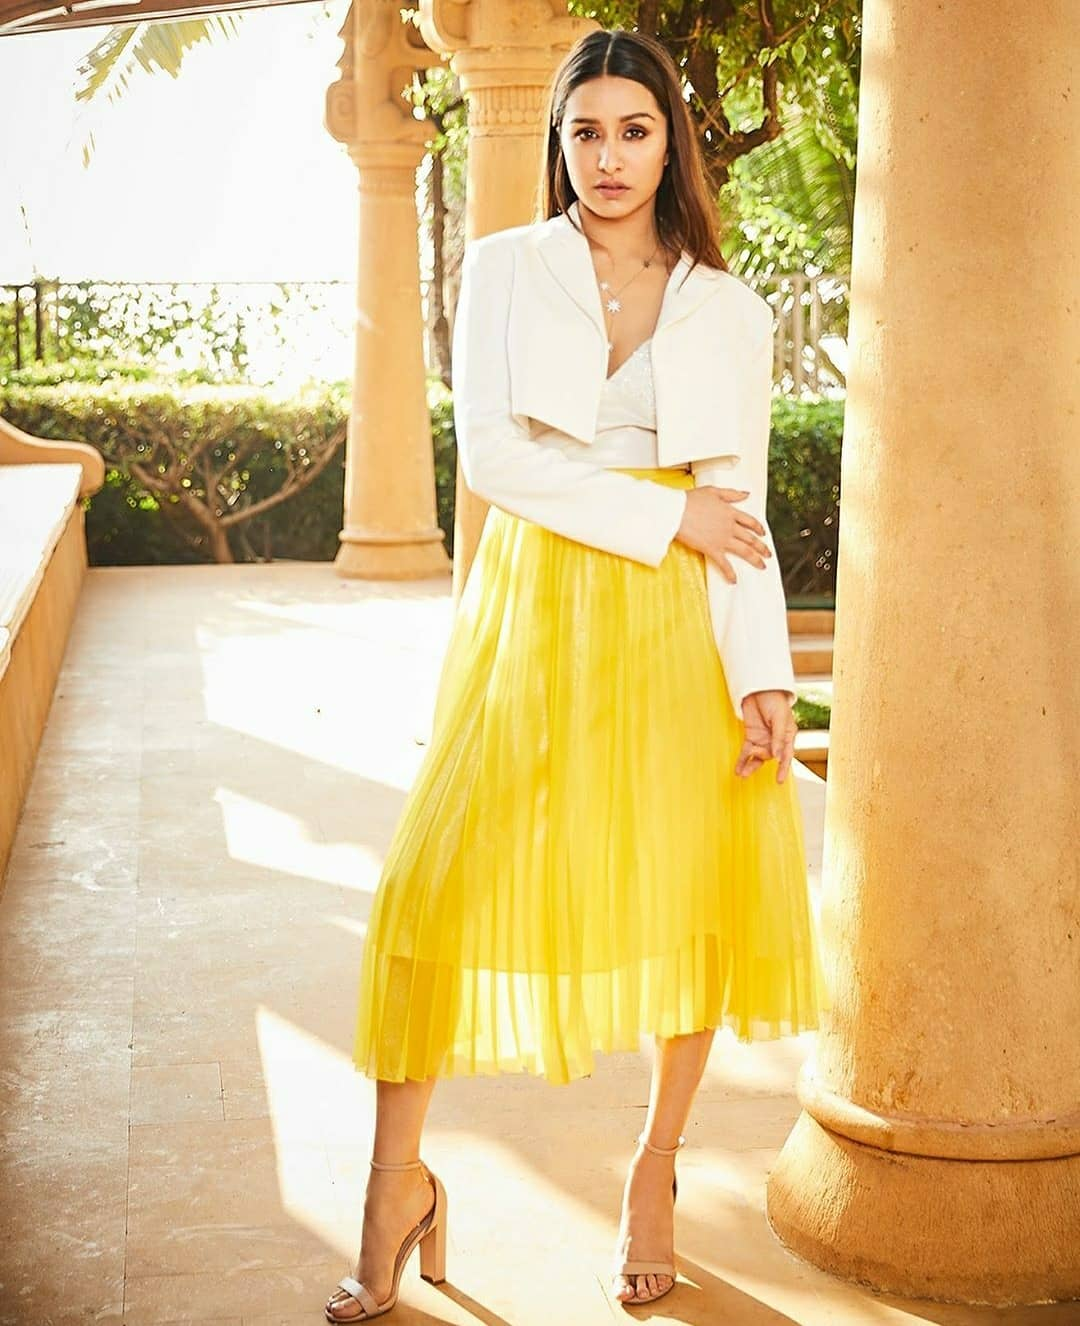 Shraddha Kapoor in Yellow Pleated Skirt Styled with a White Tank